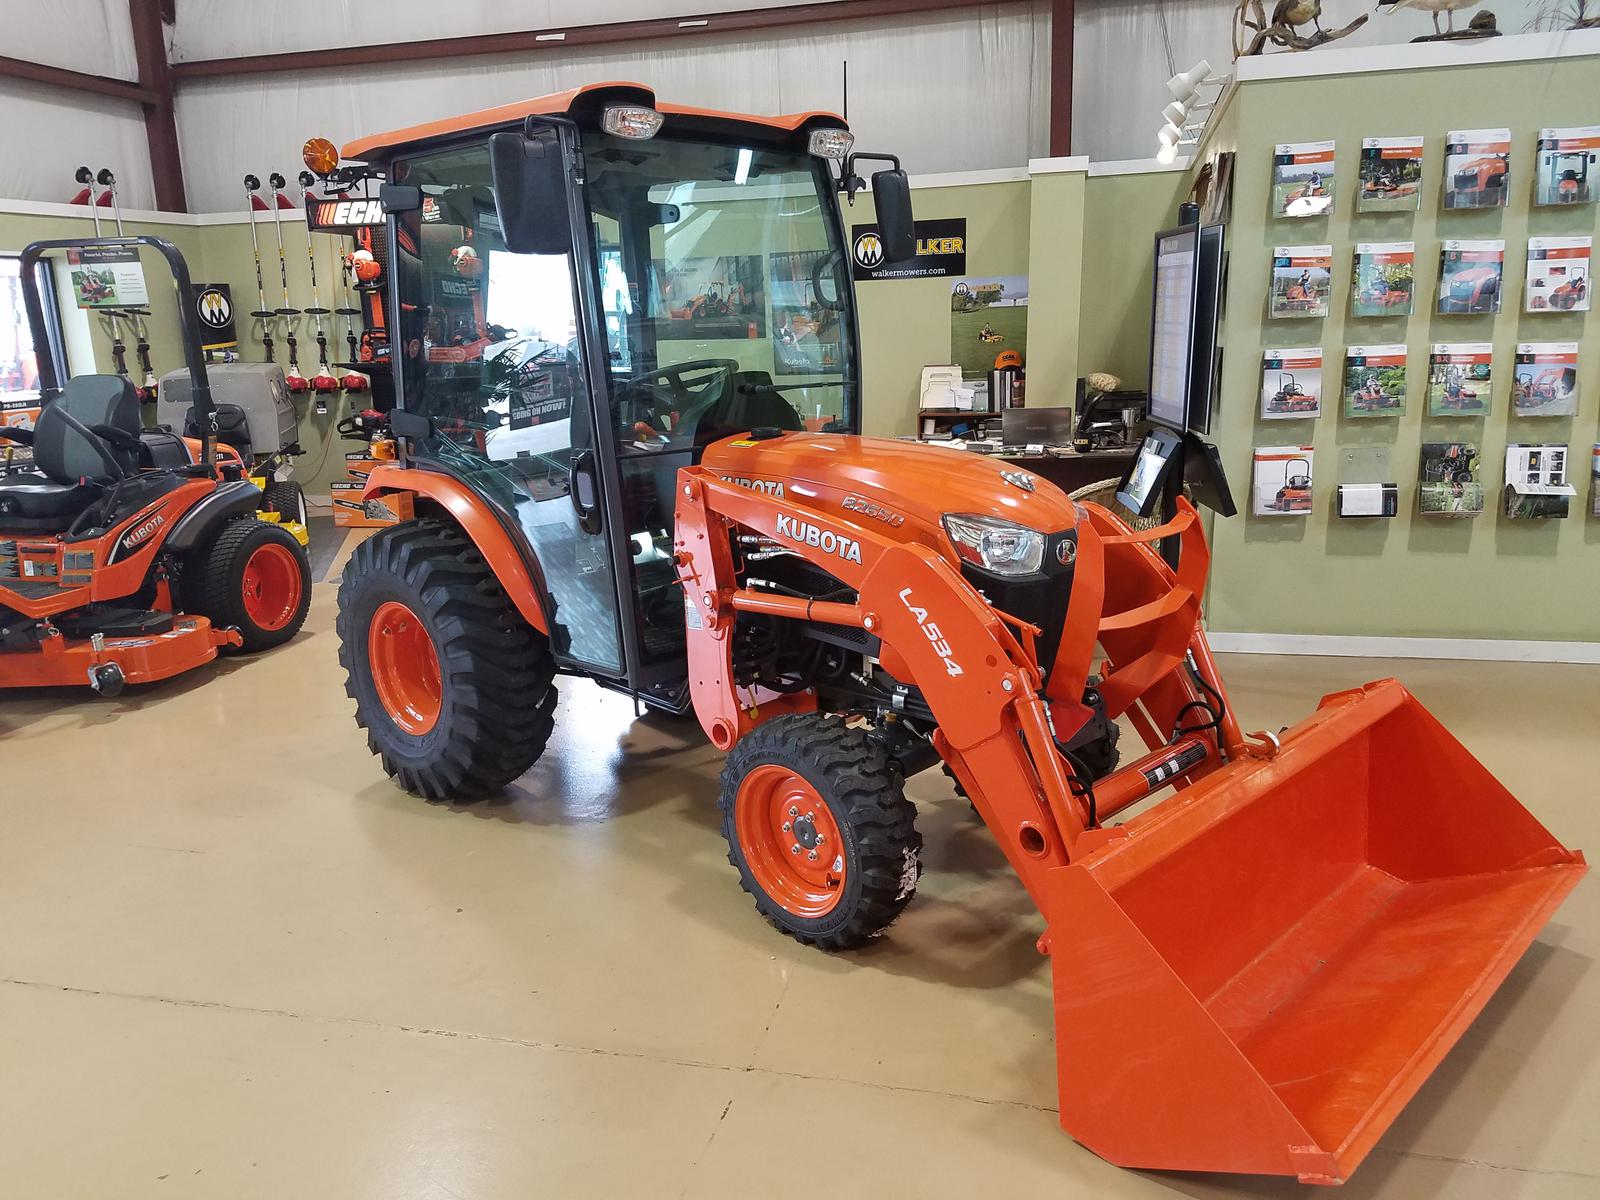 Kubota tractors for sale in kentucky - 2017 Kubota B2650hsdc Cab For Sale In Hickory Ky Horizon Lawn And Tractor 270 856 4355